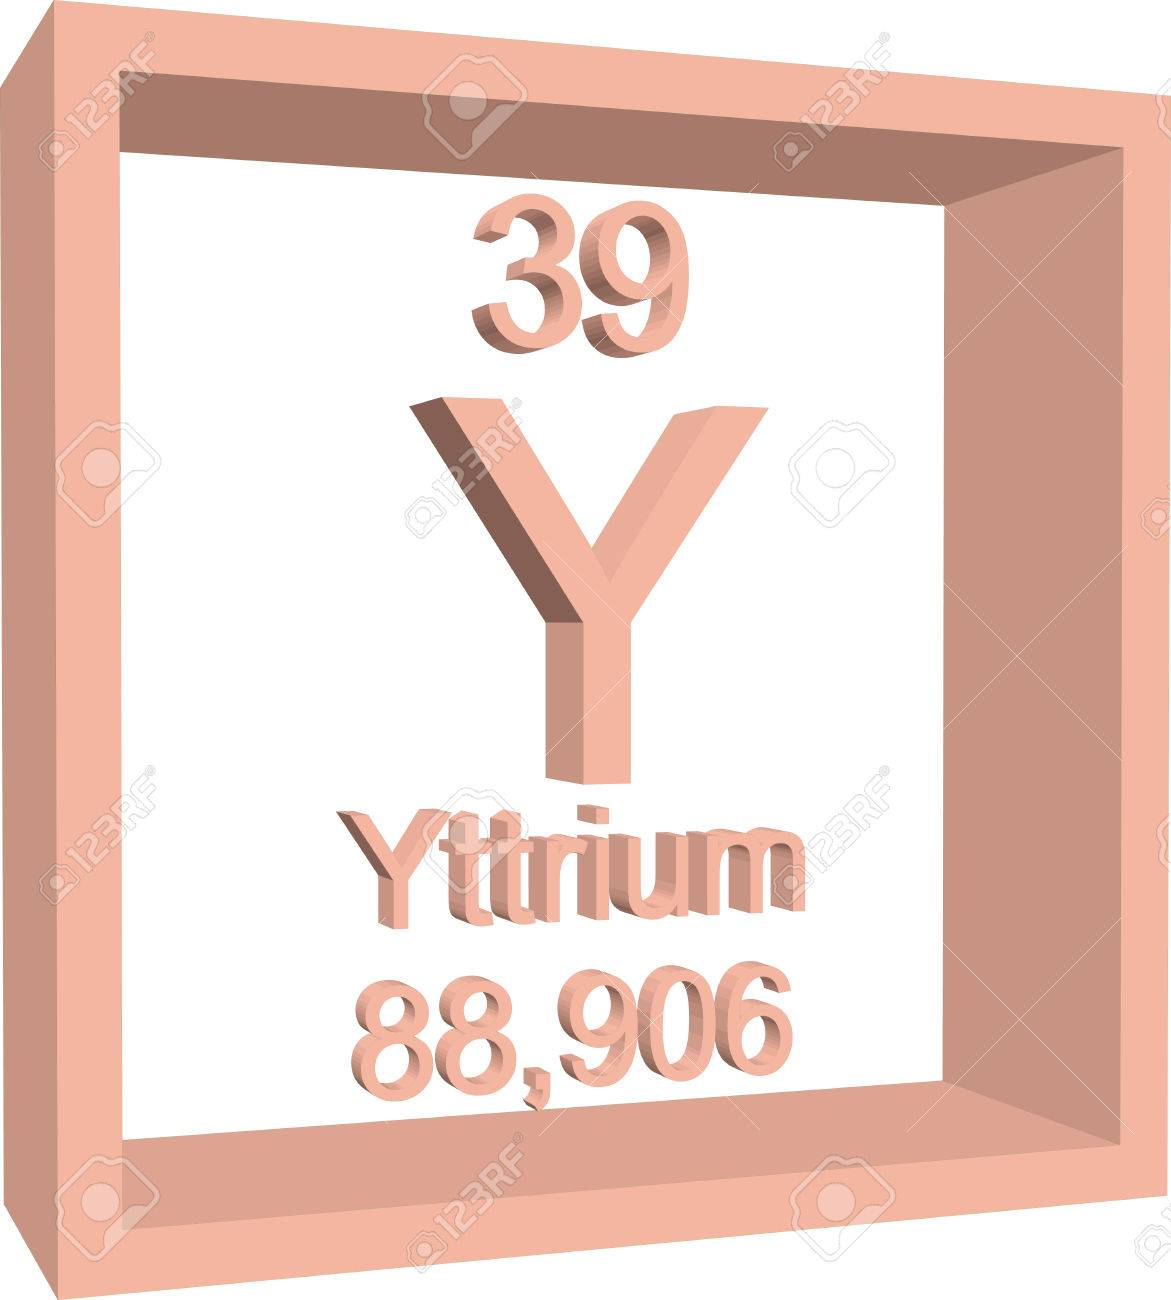 Periodic table of elements yttrium royalty free cliparts vectors periodic table of elements yttrium stock vector 57967476 urtaz Images